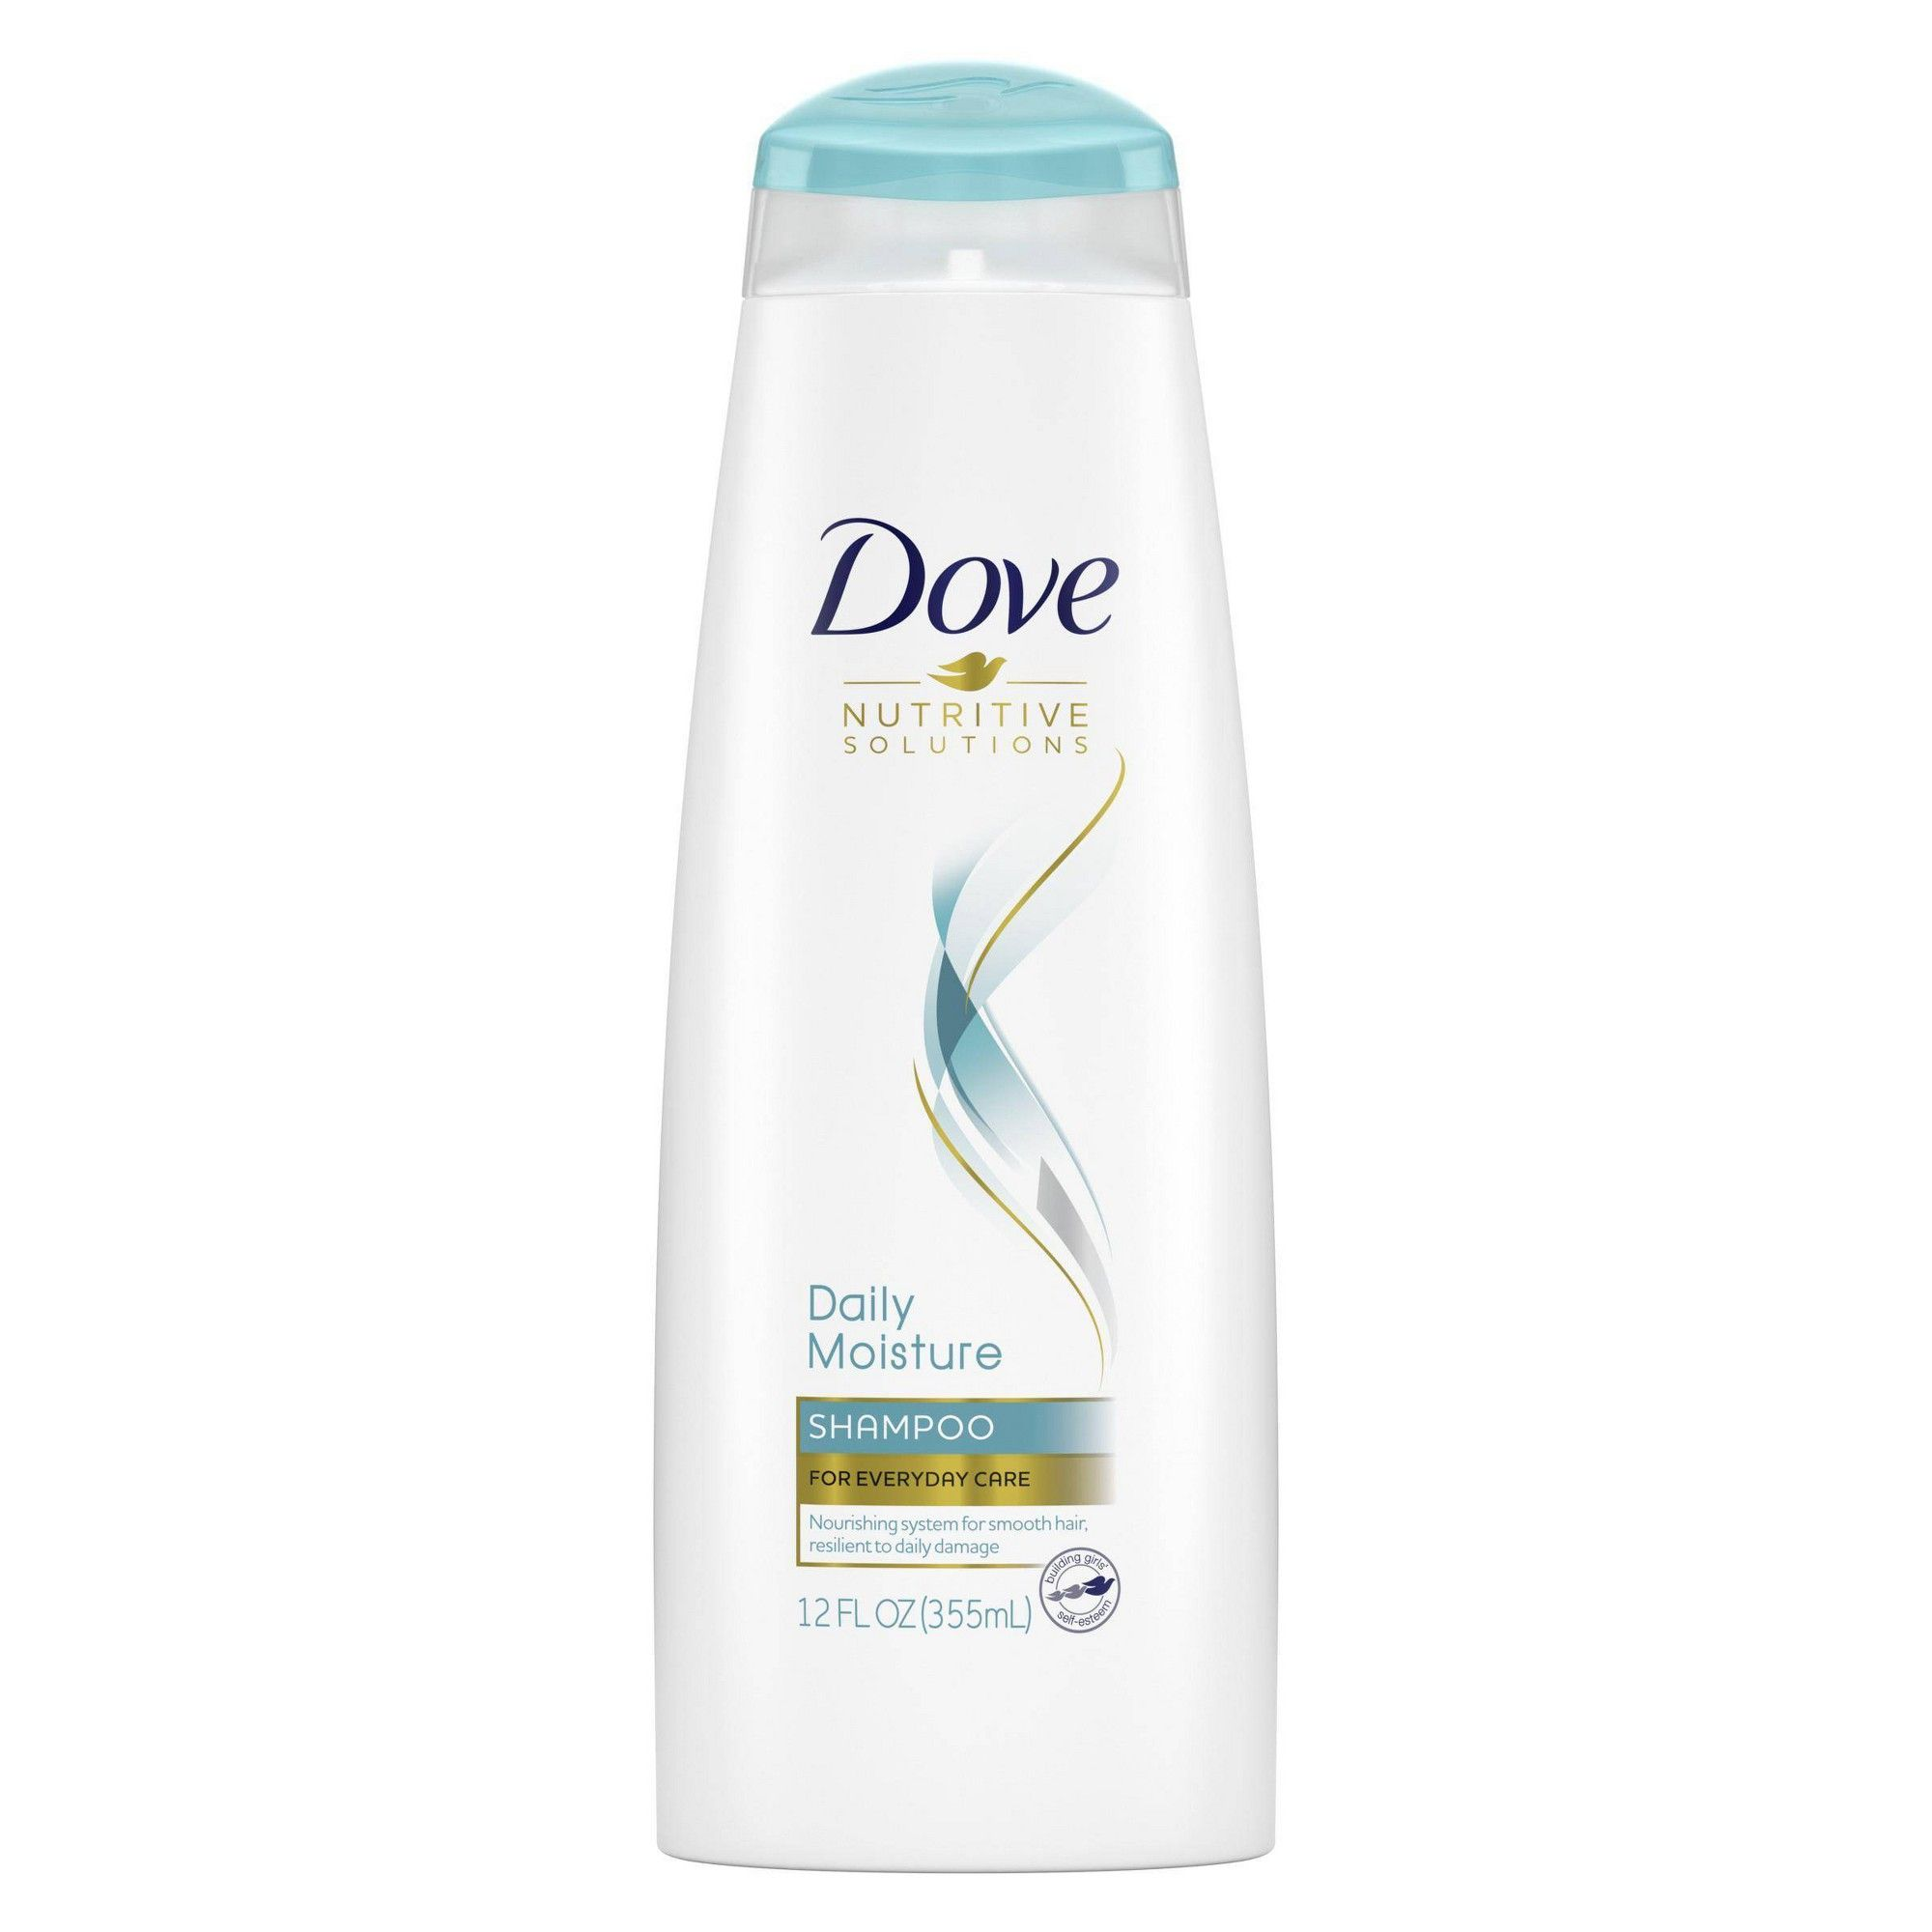 Dove Nutritive Solutions Moisturizing Shampoo For Normal To Dry Hair Daily Moisture 12 Fl Oz In 2021 Moisturizing Shampoo Dove Shampoo Moisturizer